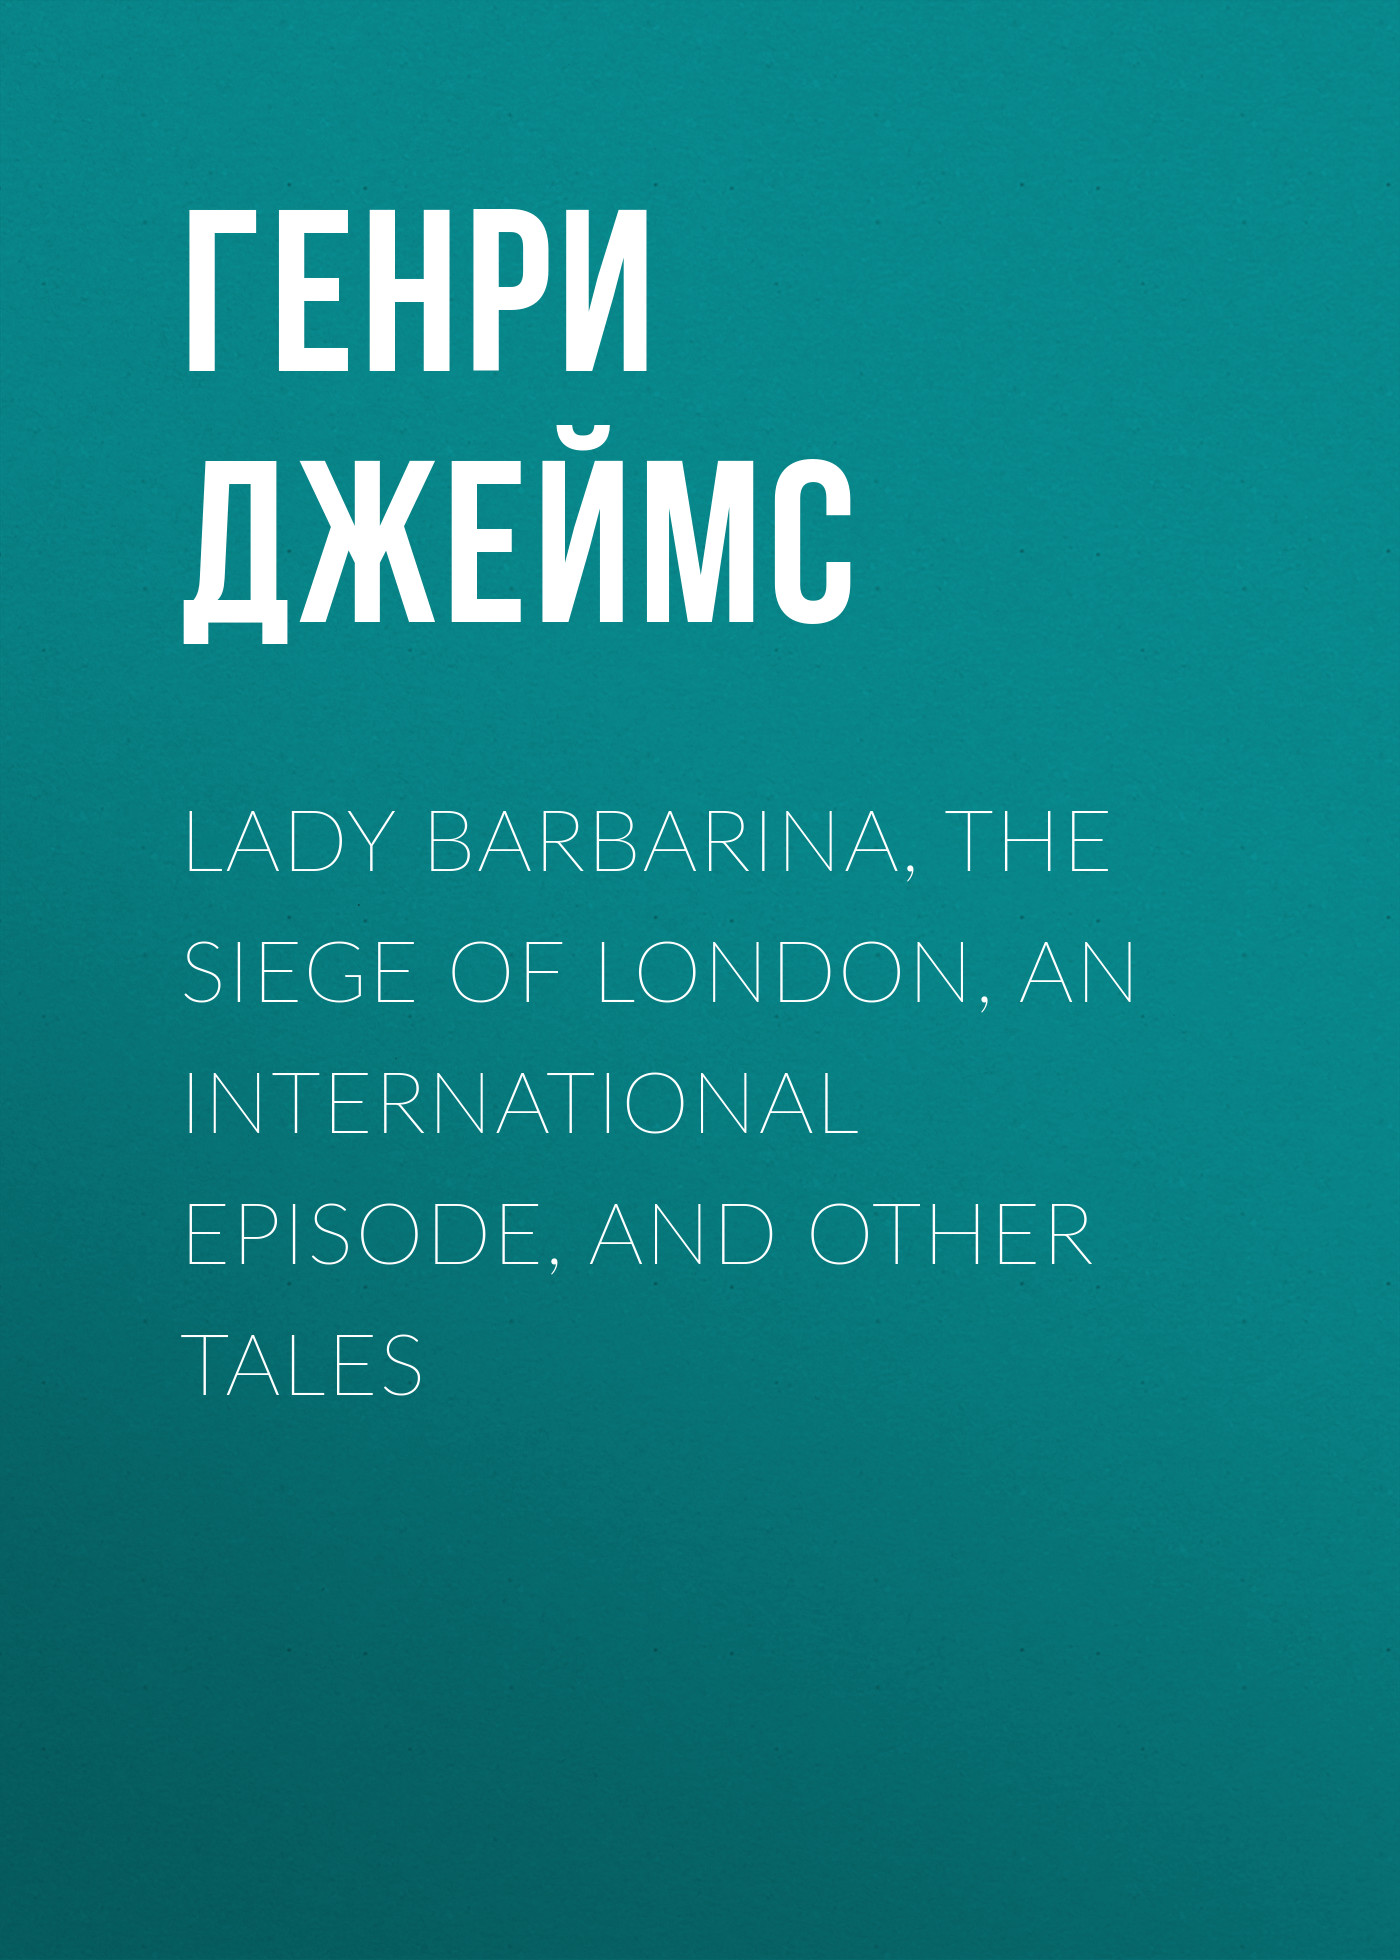 Генри Джеймс Lady Barbarina, The Siege of London, An International Episode, and Other Tales ip камера hiwatch ds i102 6 mm